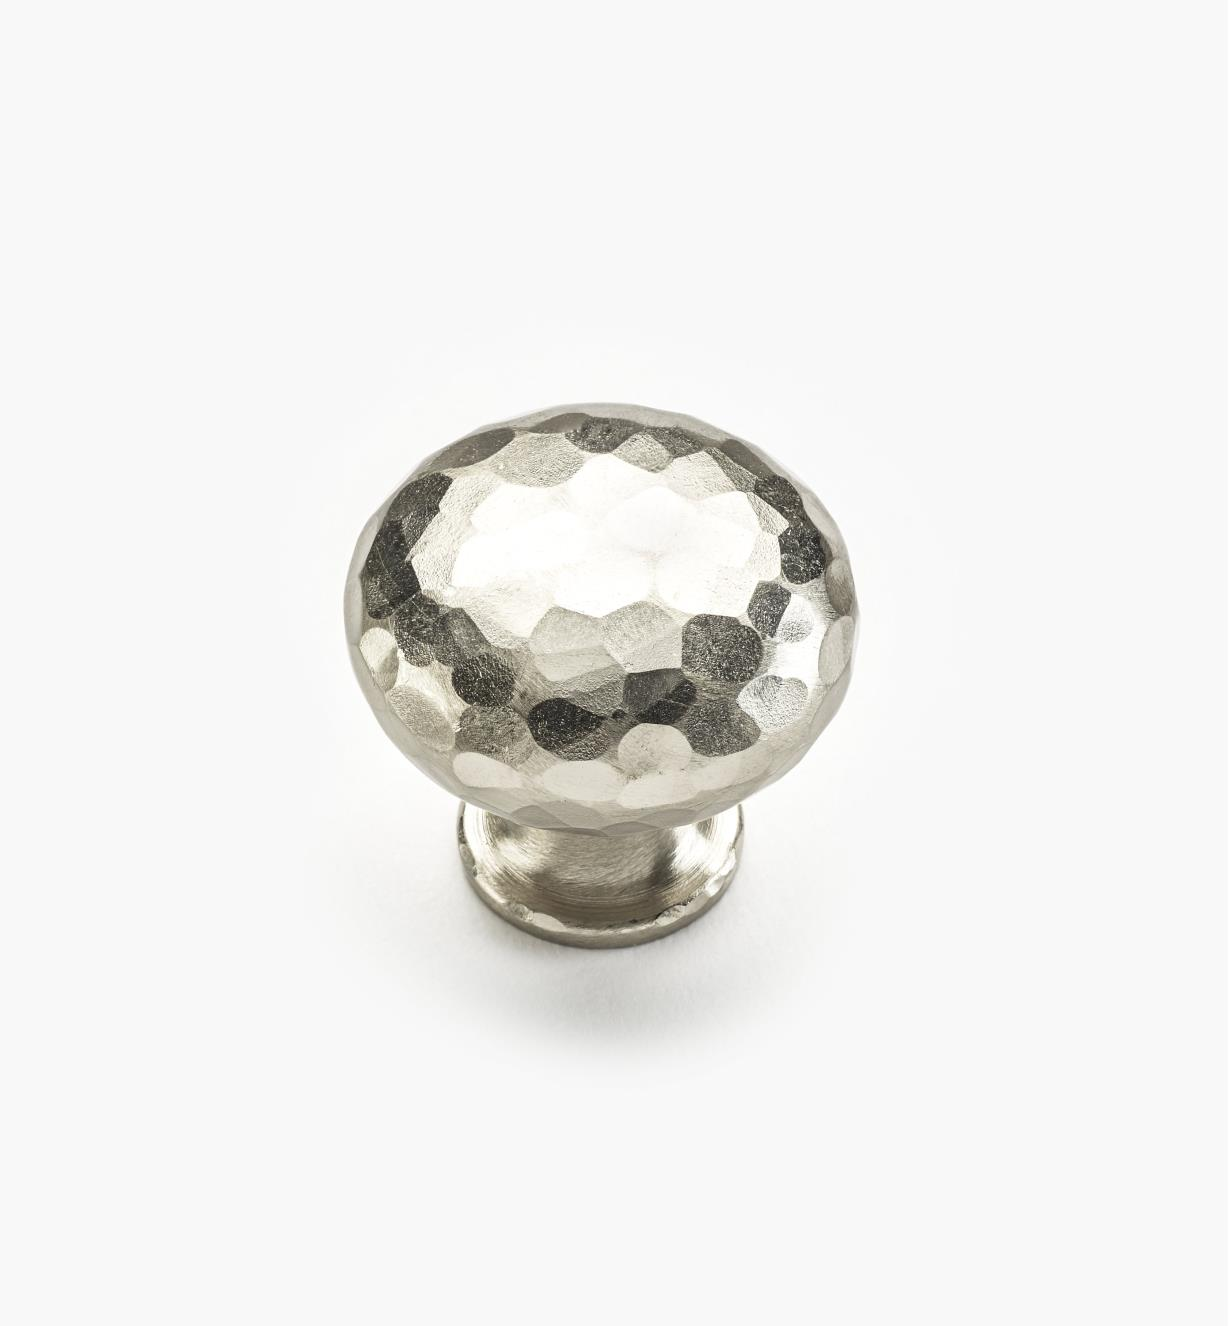 01W4365 - Hammered Satin Nickel Knob